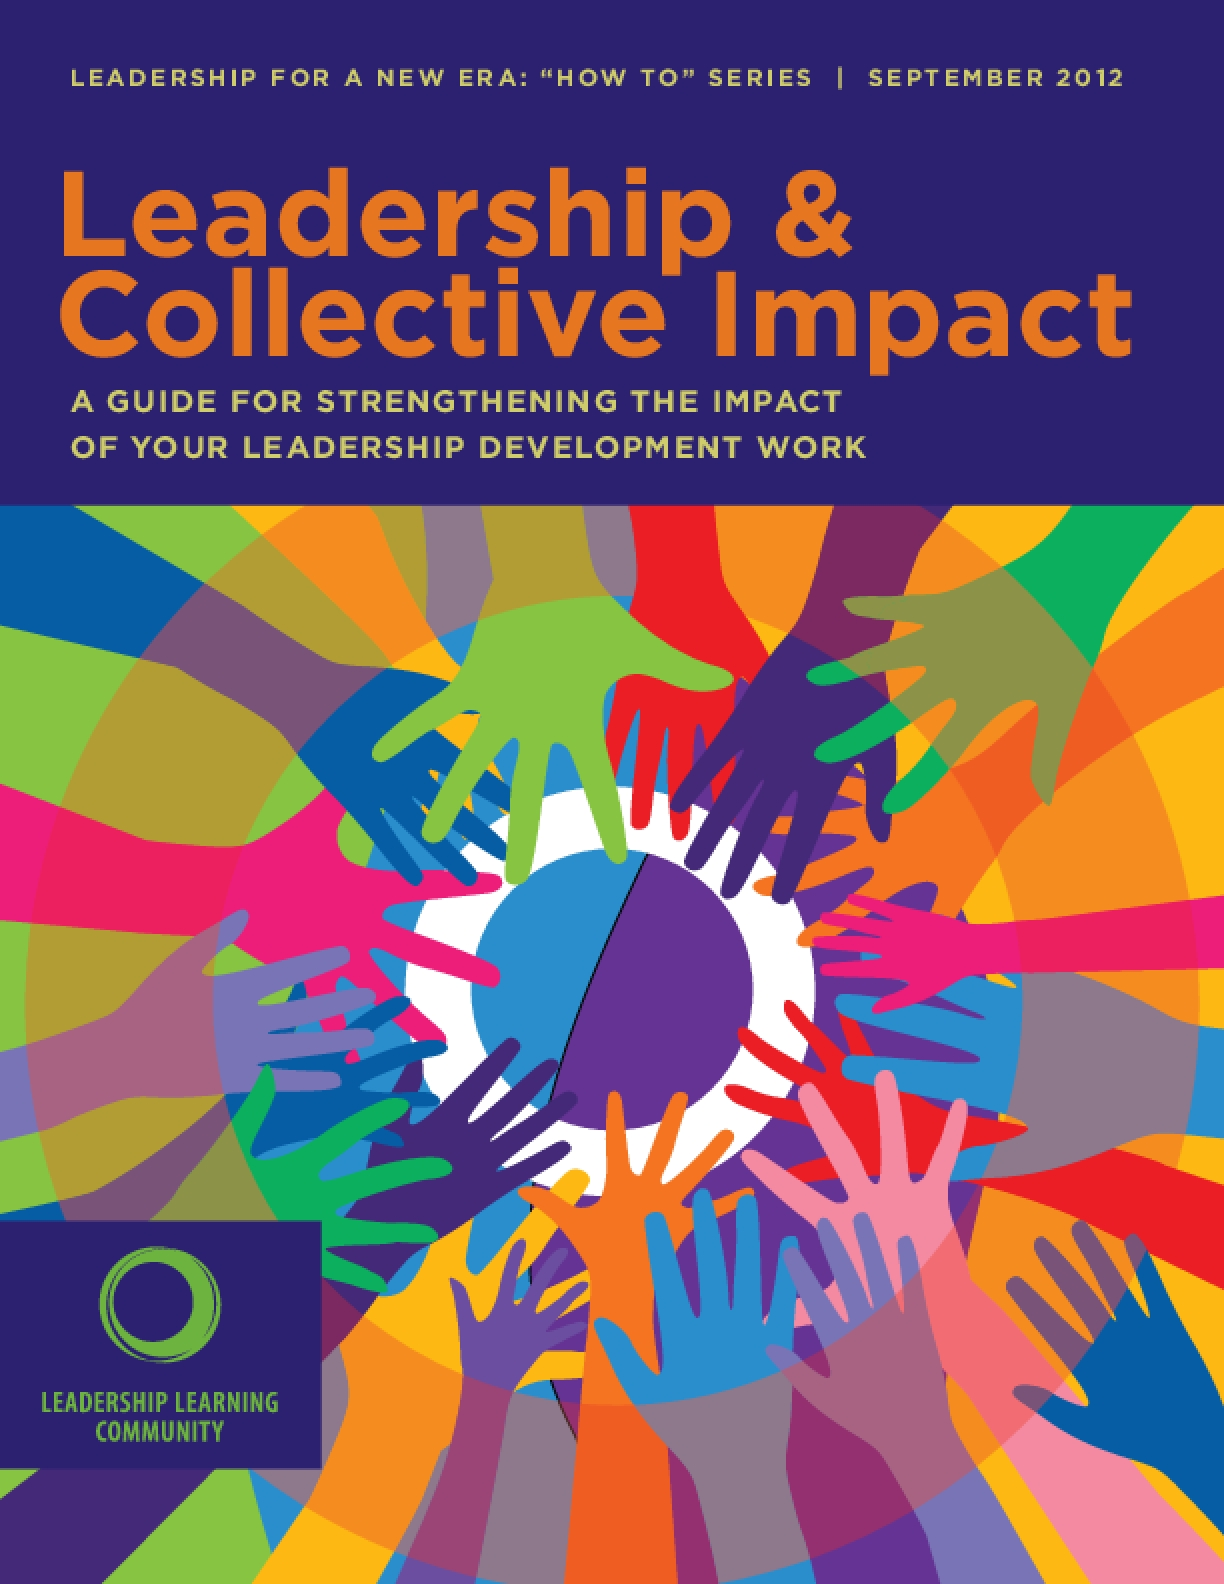 Leadership & Collective Impact: A Guide for Strengthening the Impact of Your Leadership Development Work